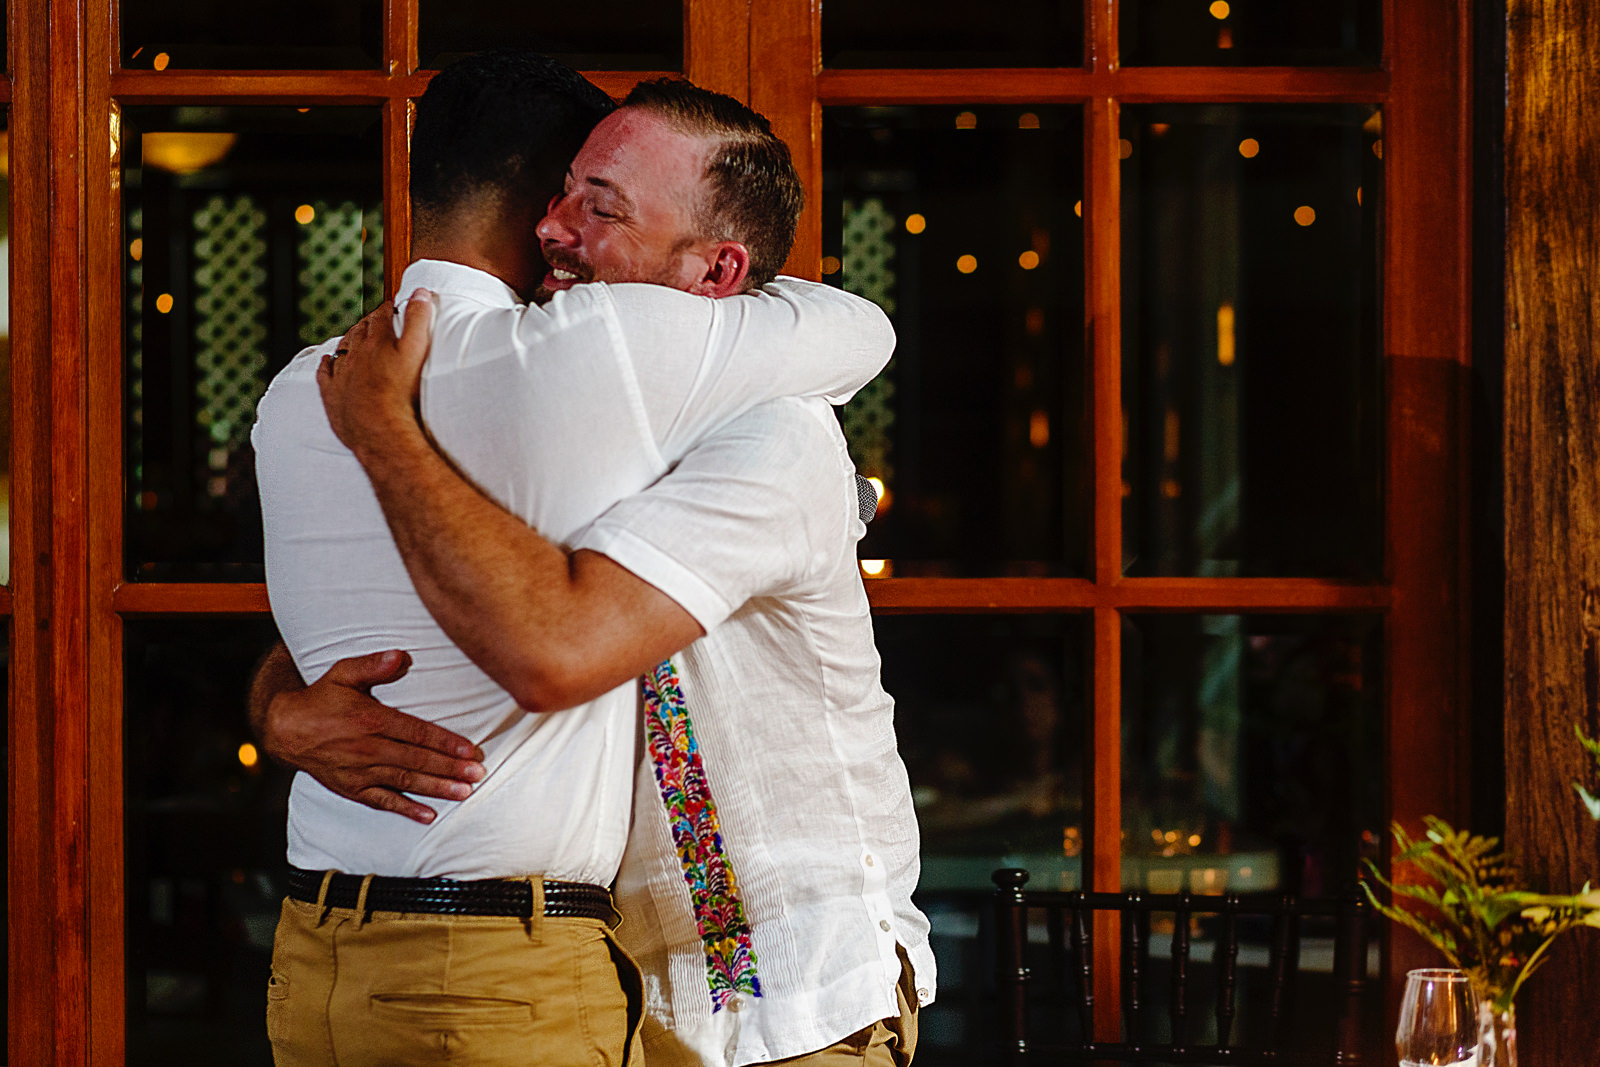 groom-bestman-hug-speeches-dinner-wedding.jpg